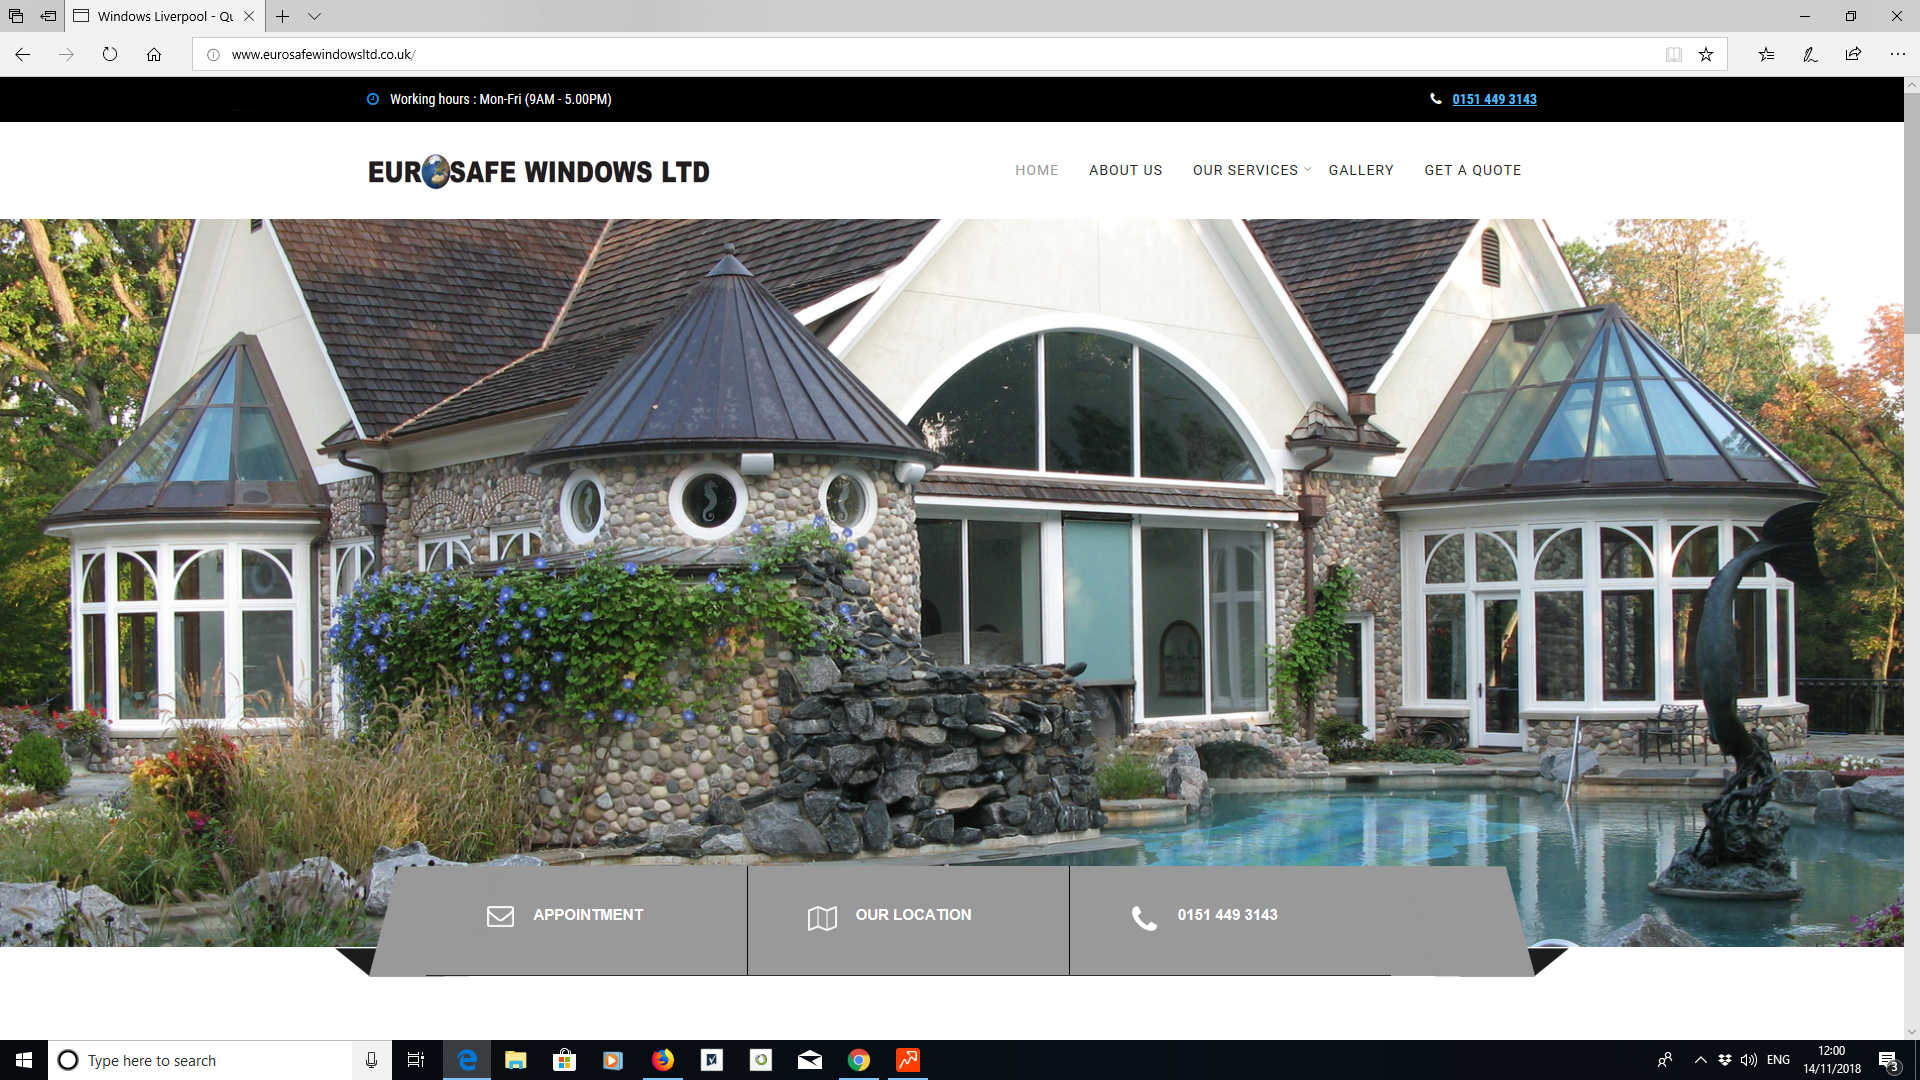 Website we designed for Eurosafe Windows LTD